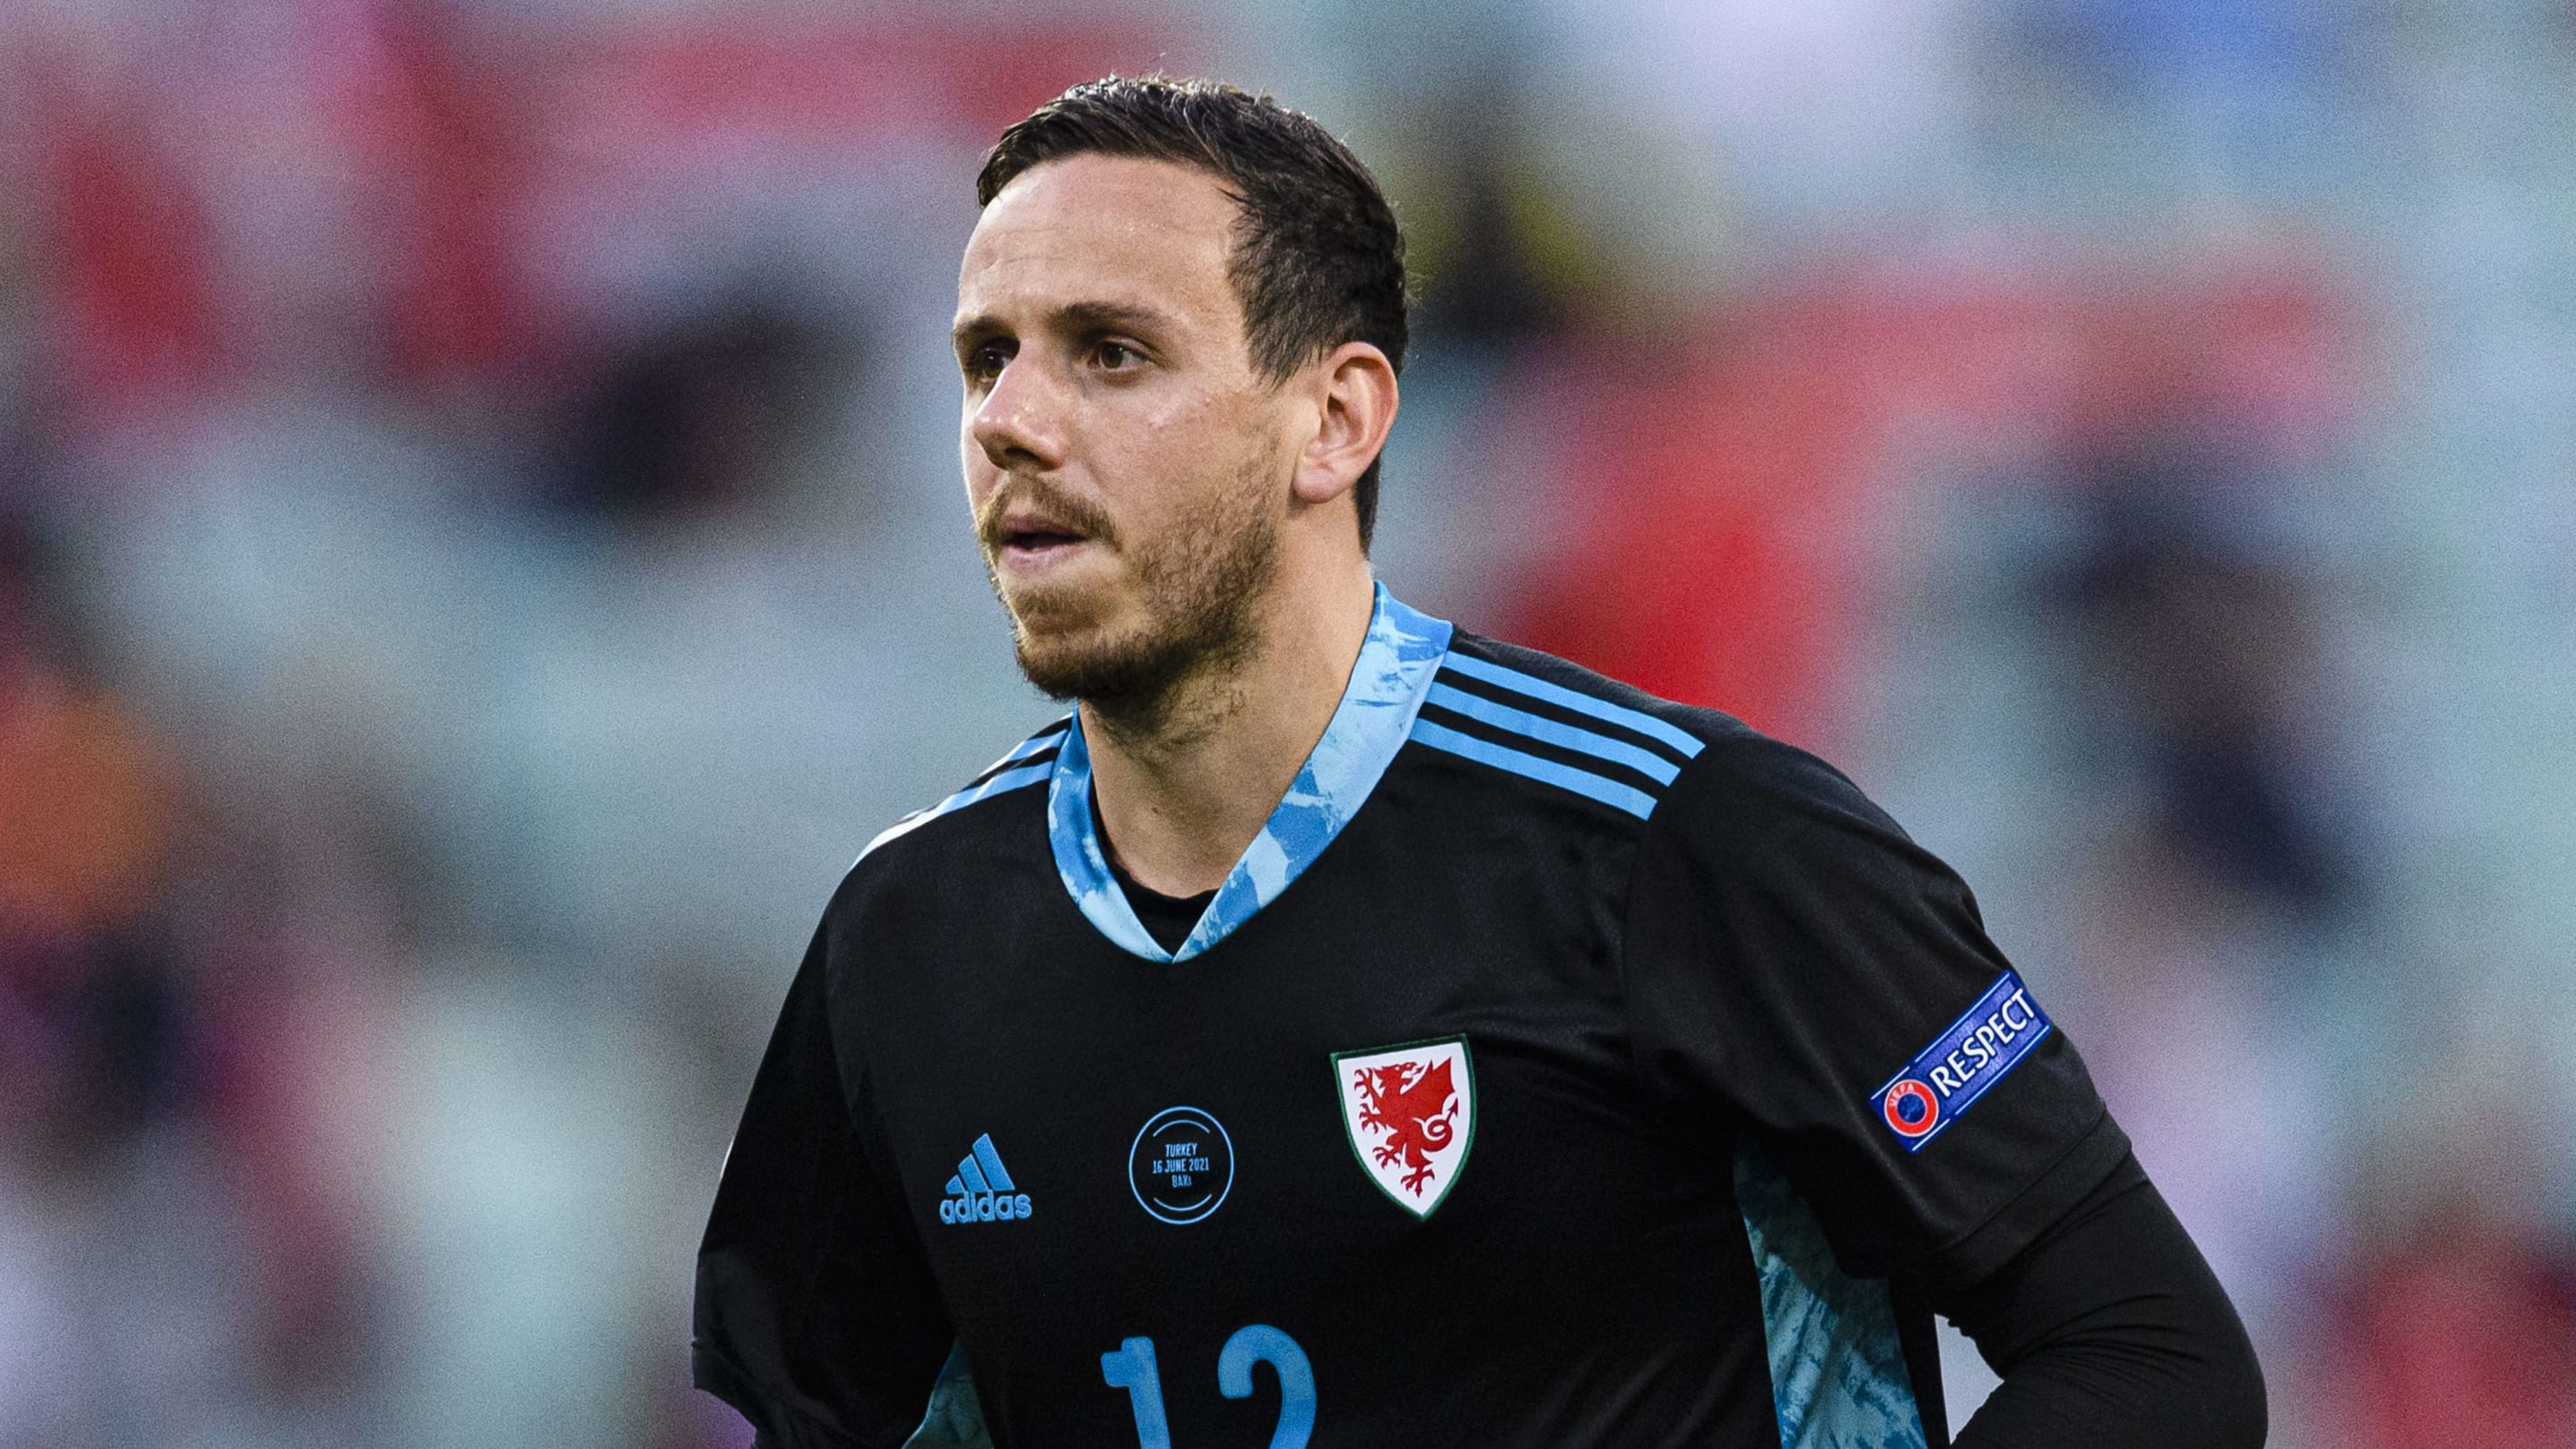 Danny Ward on being Wales' no.1 & facing clubmate Kasper Schmeichel at Euro 2020